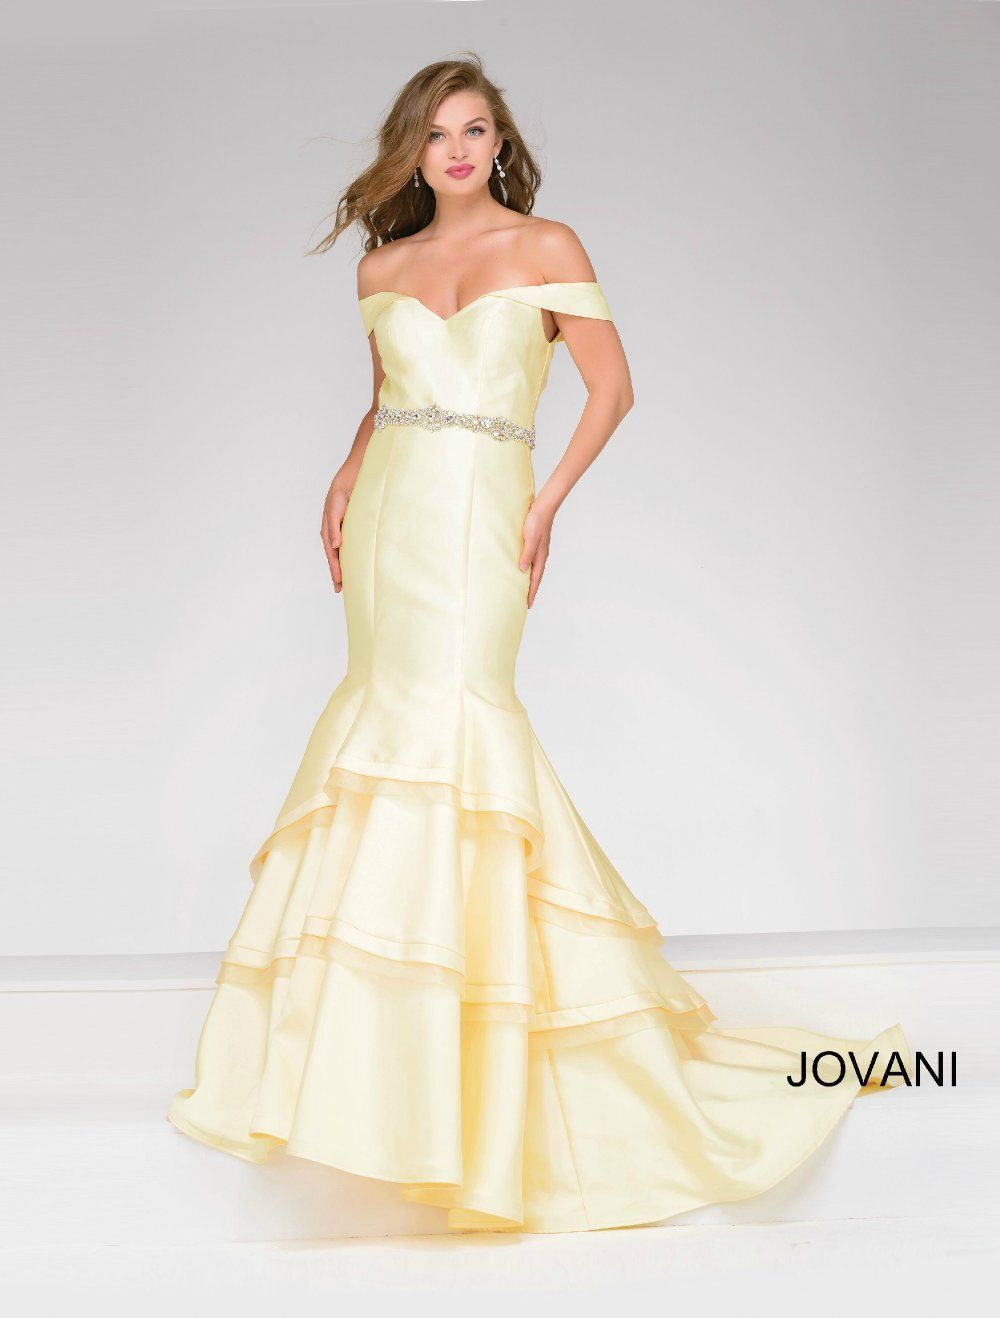 Cool jovani dress gown prom price guaranteelayaway